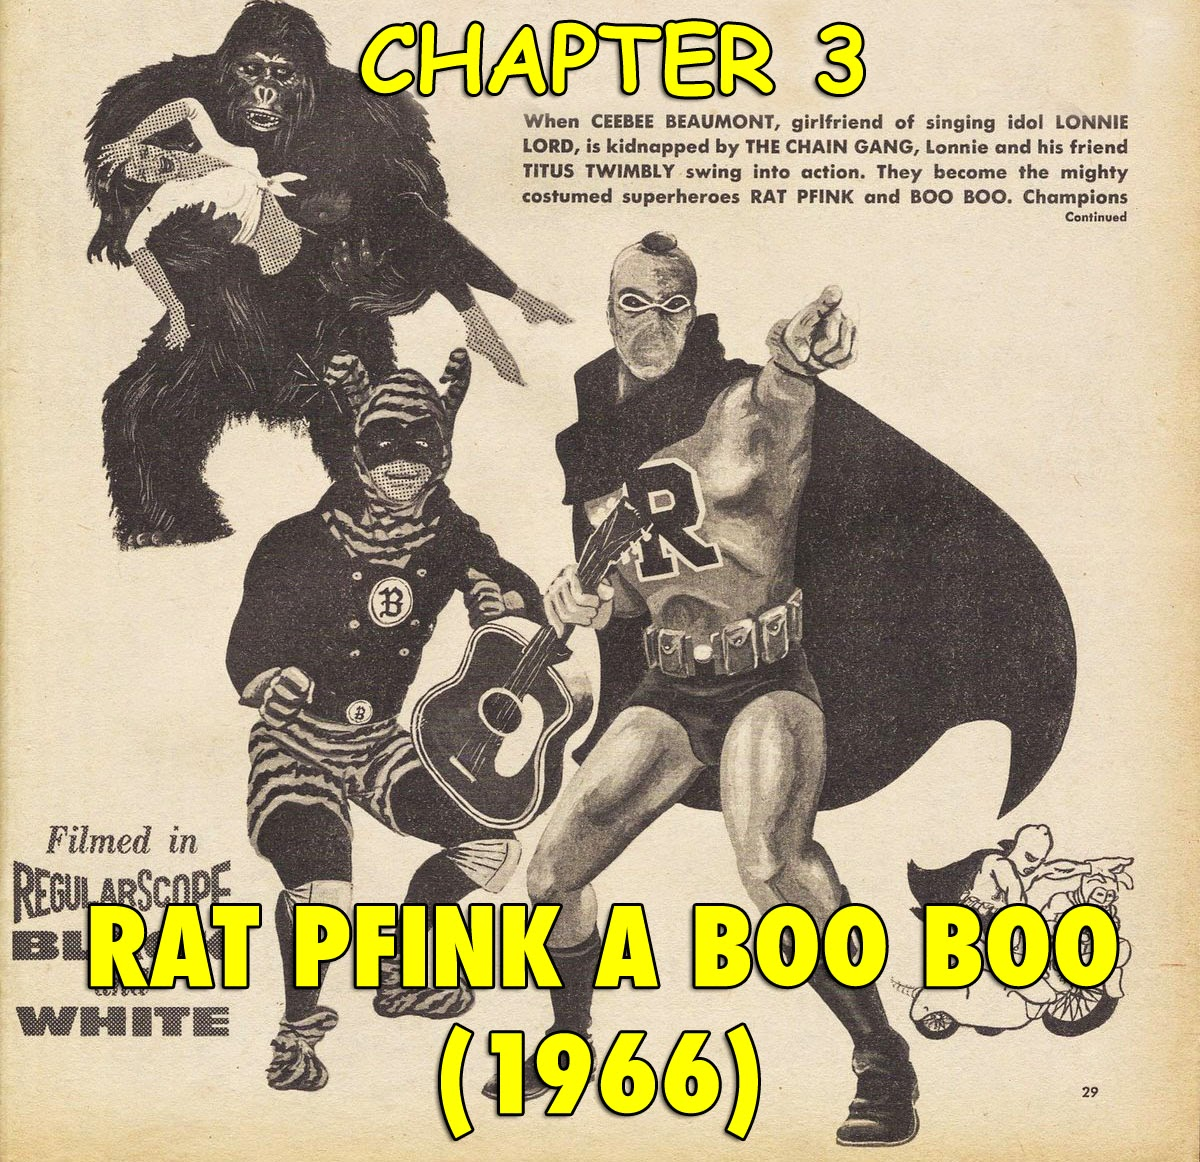 Rat Pfink A Boo Boo 1966 cult superhero films